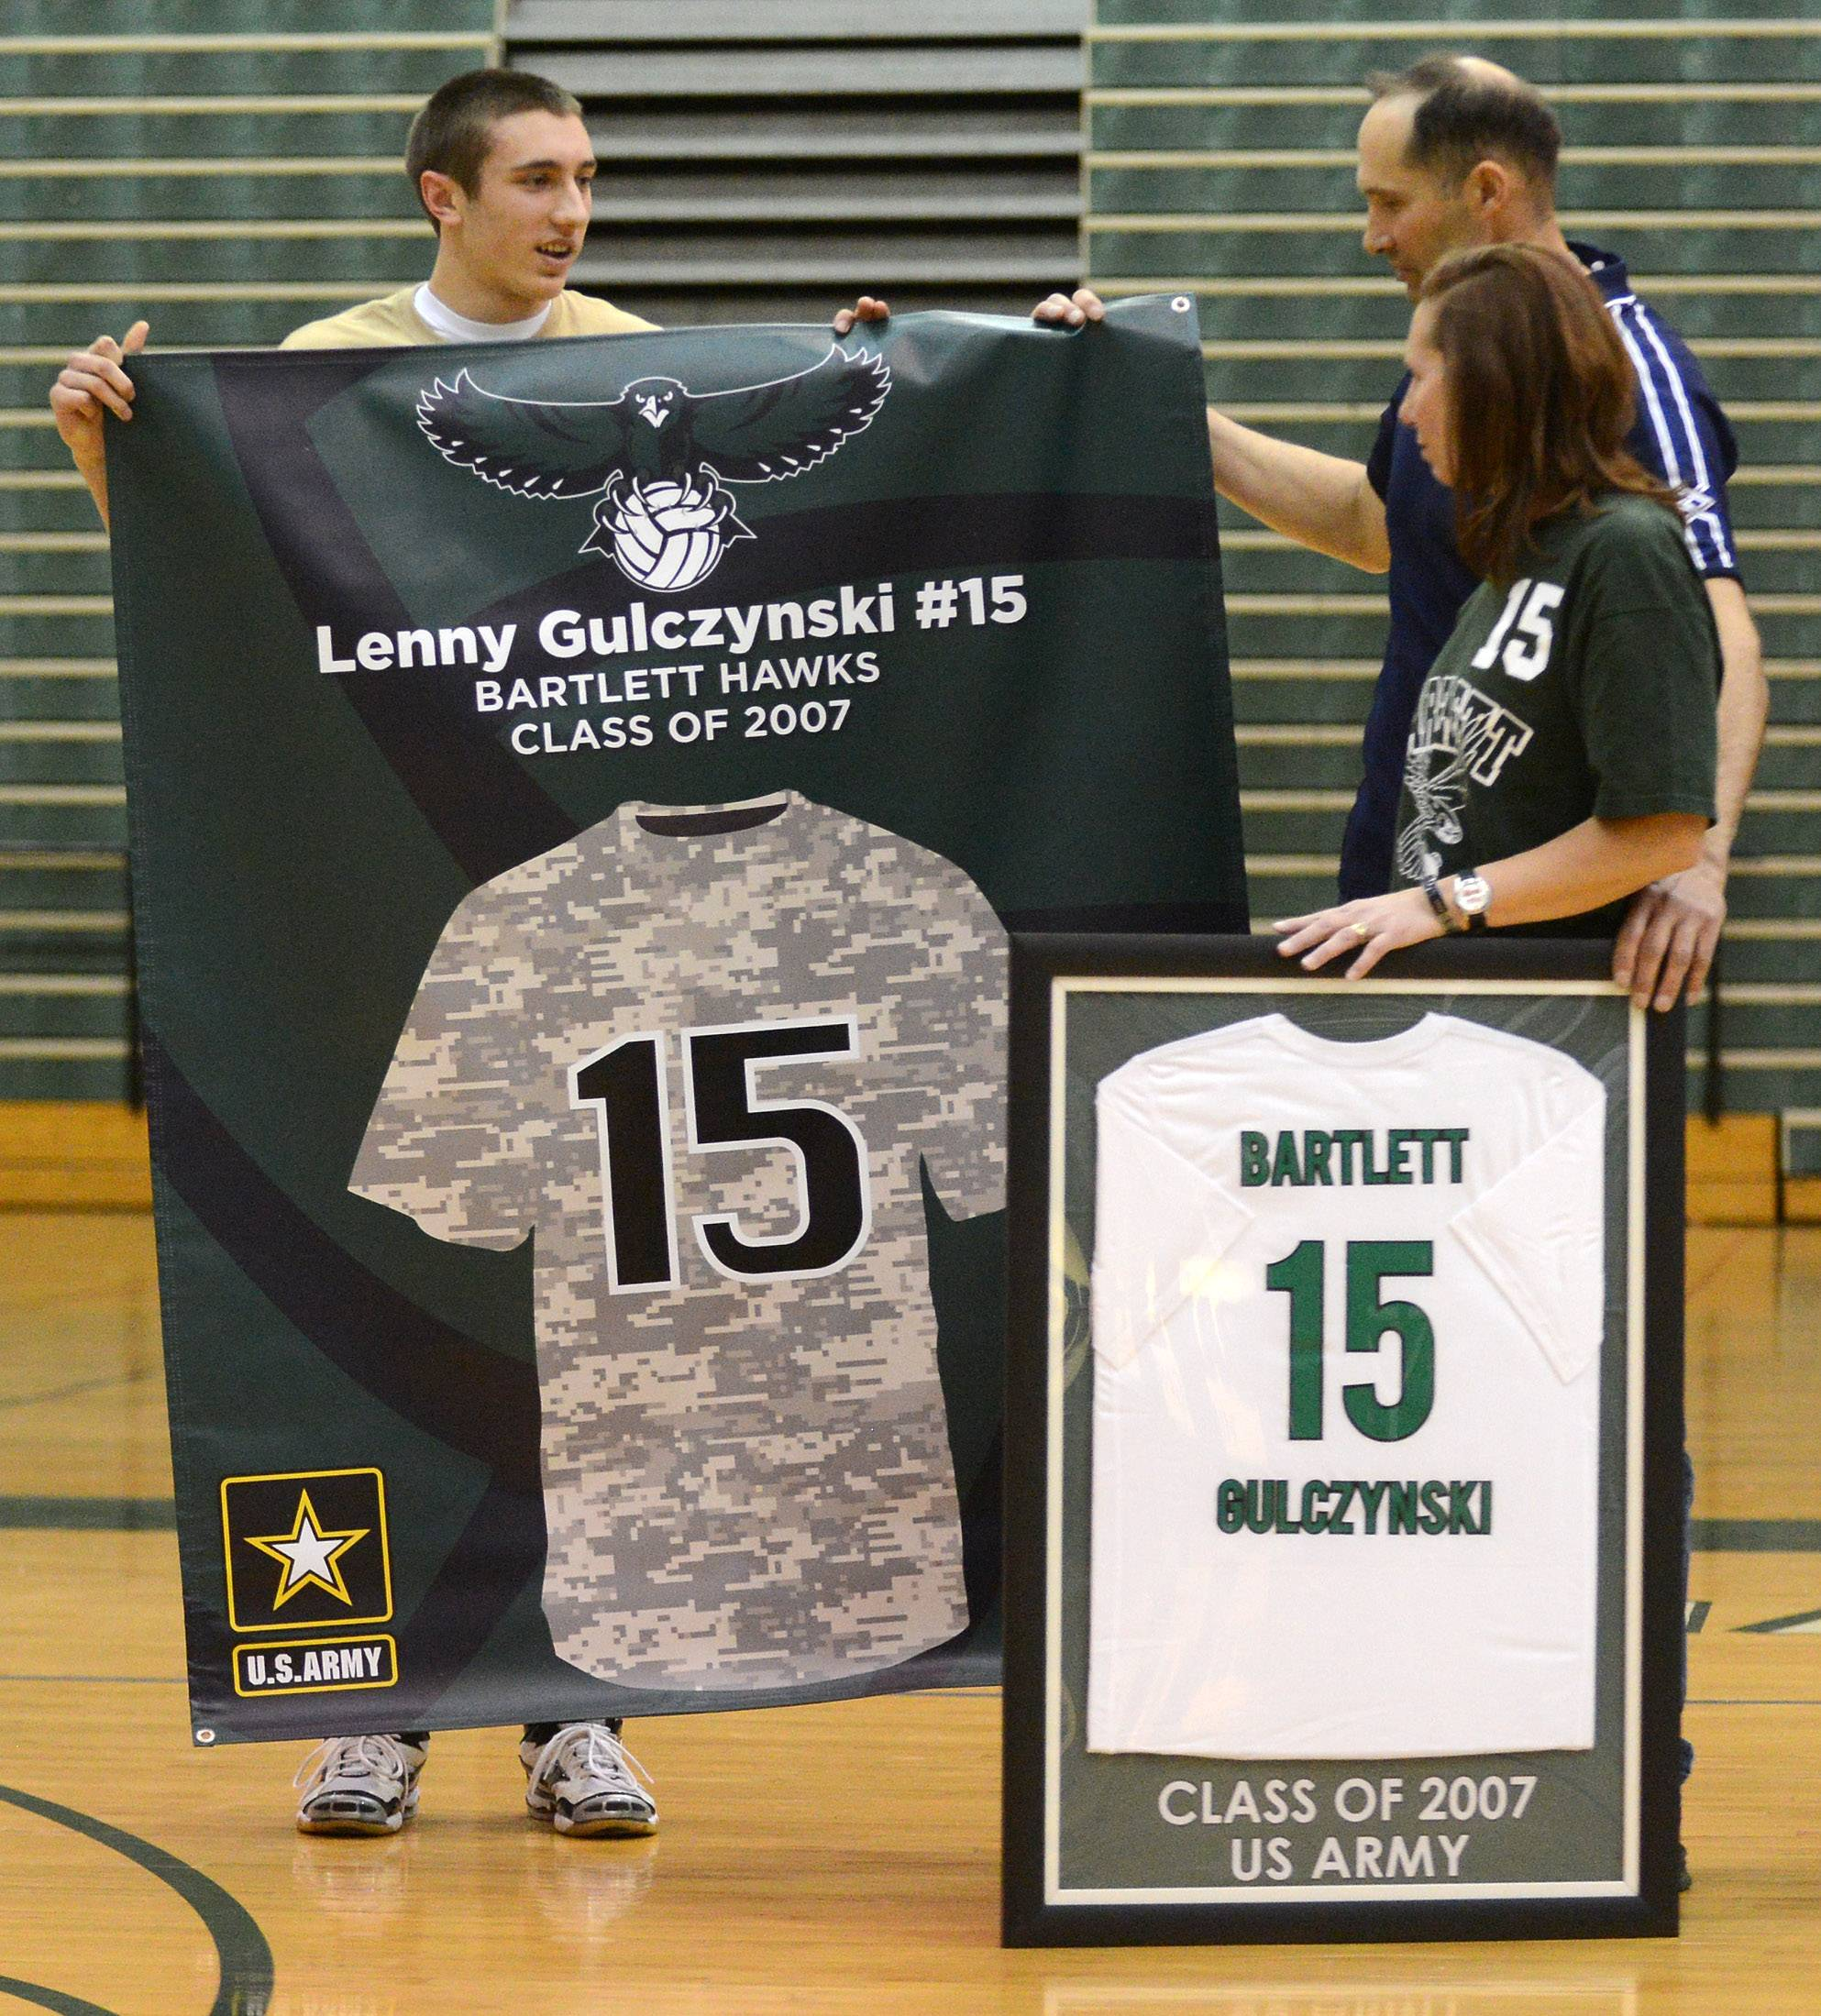 Mike Gulczynski and his parents, Mike Sr., and Jackie, admire the banner created for the jersey retirement ceremony of Mike's brother Lenny Thursday at Bartlett High School. Lenny was a 2007 grad who died while serving in Iraq.